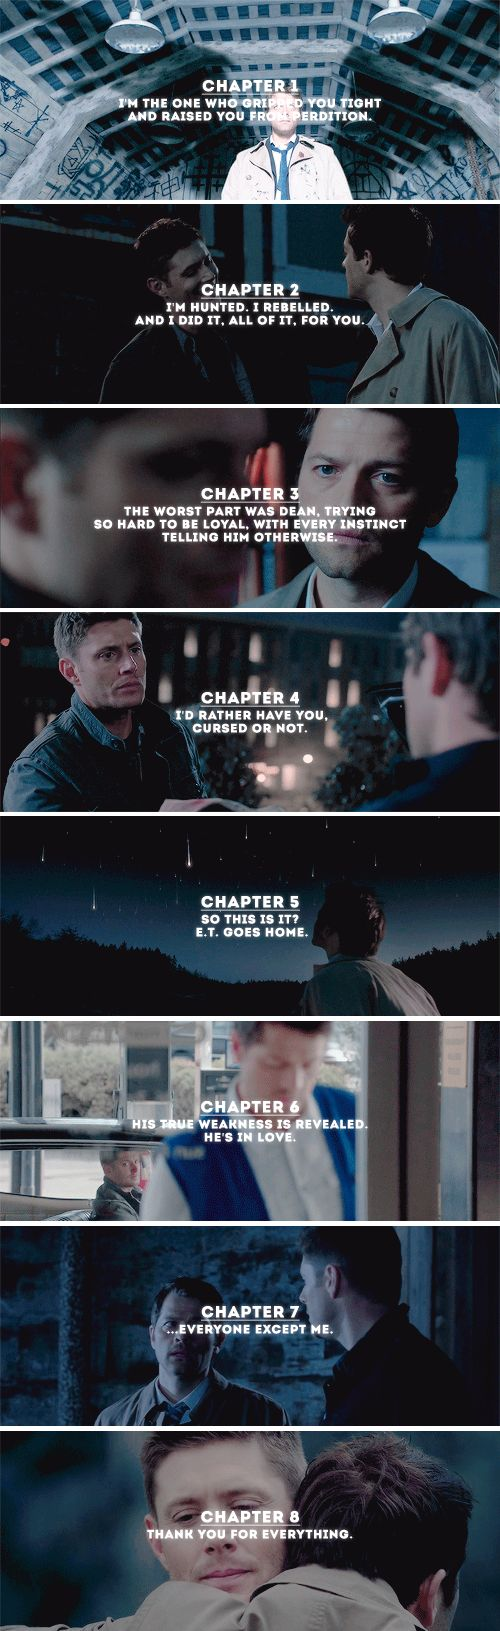 September 18th 2008 - September 18th 2016  Happy anniversary, Dean and Castiel! #spn #destiel